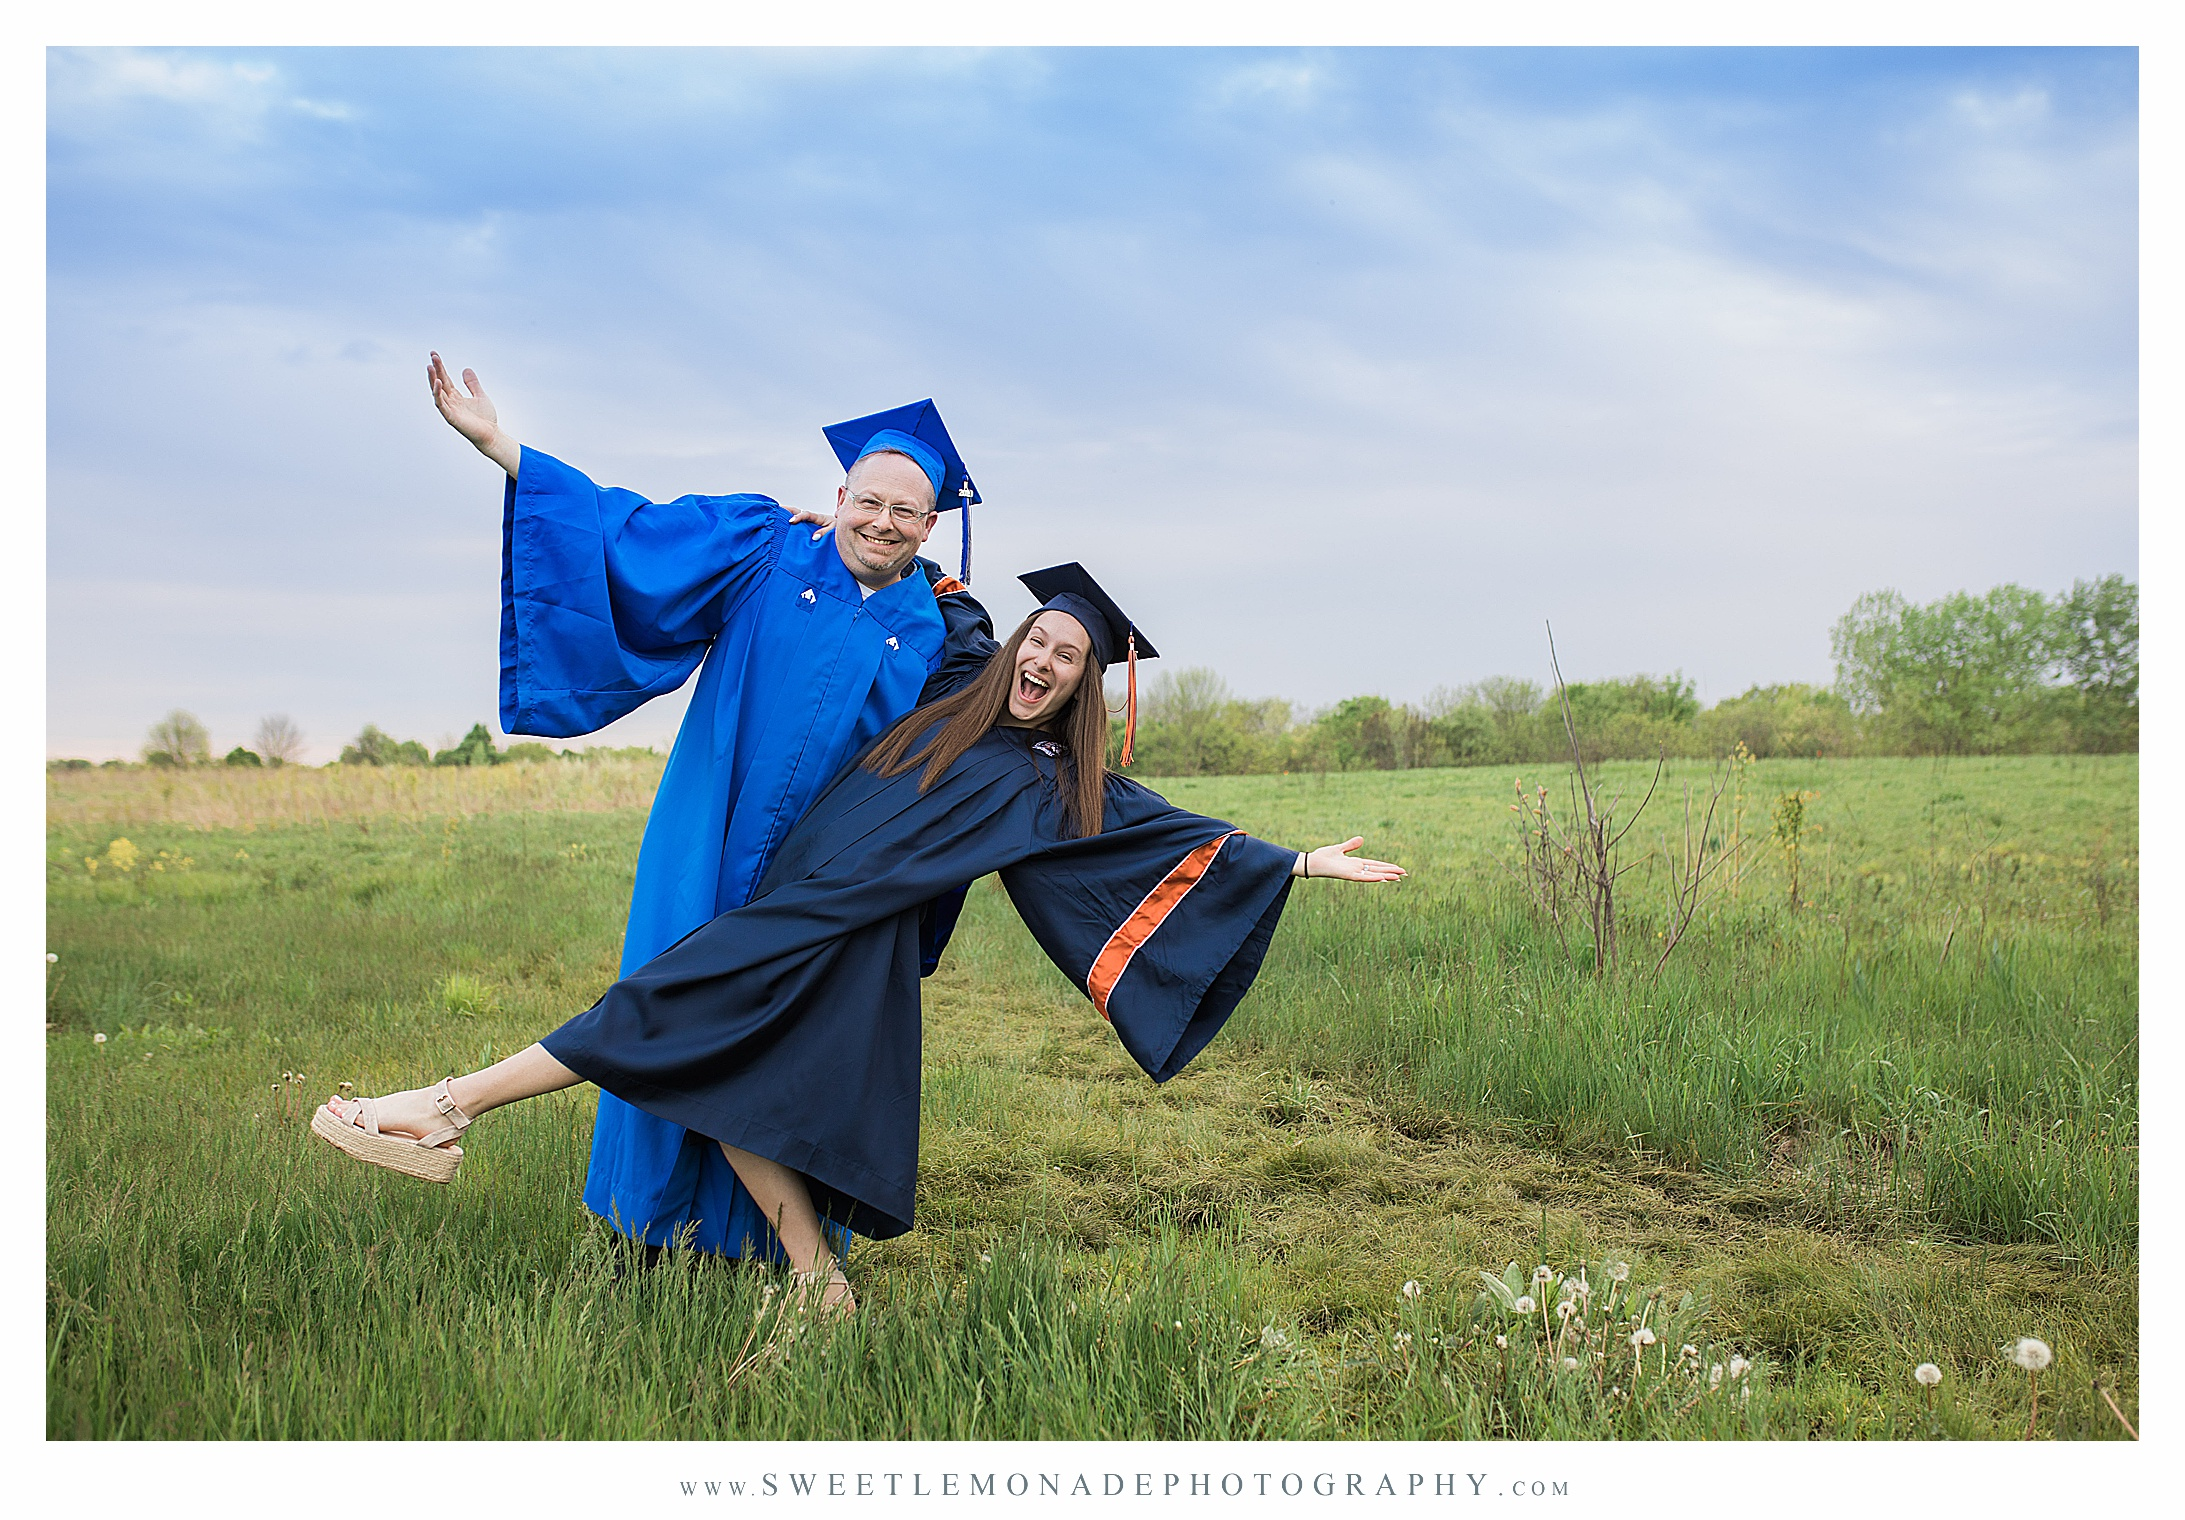 disney-mickey-ears-graduation-cap-pictures-mahomet-illinois-sweet-lemonade-photography_2439.jpg